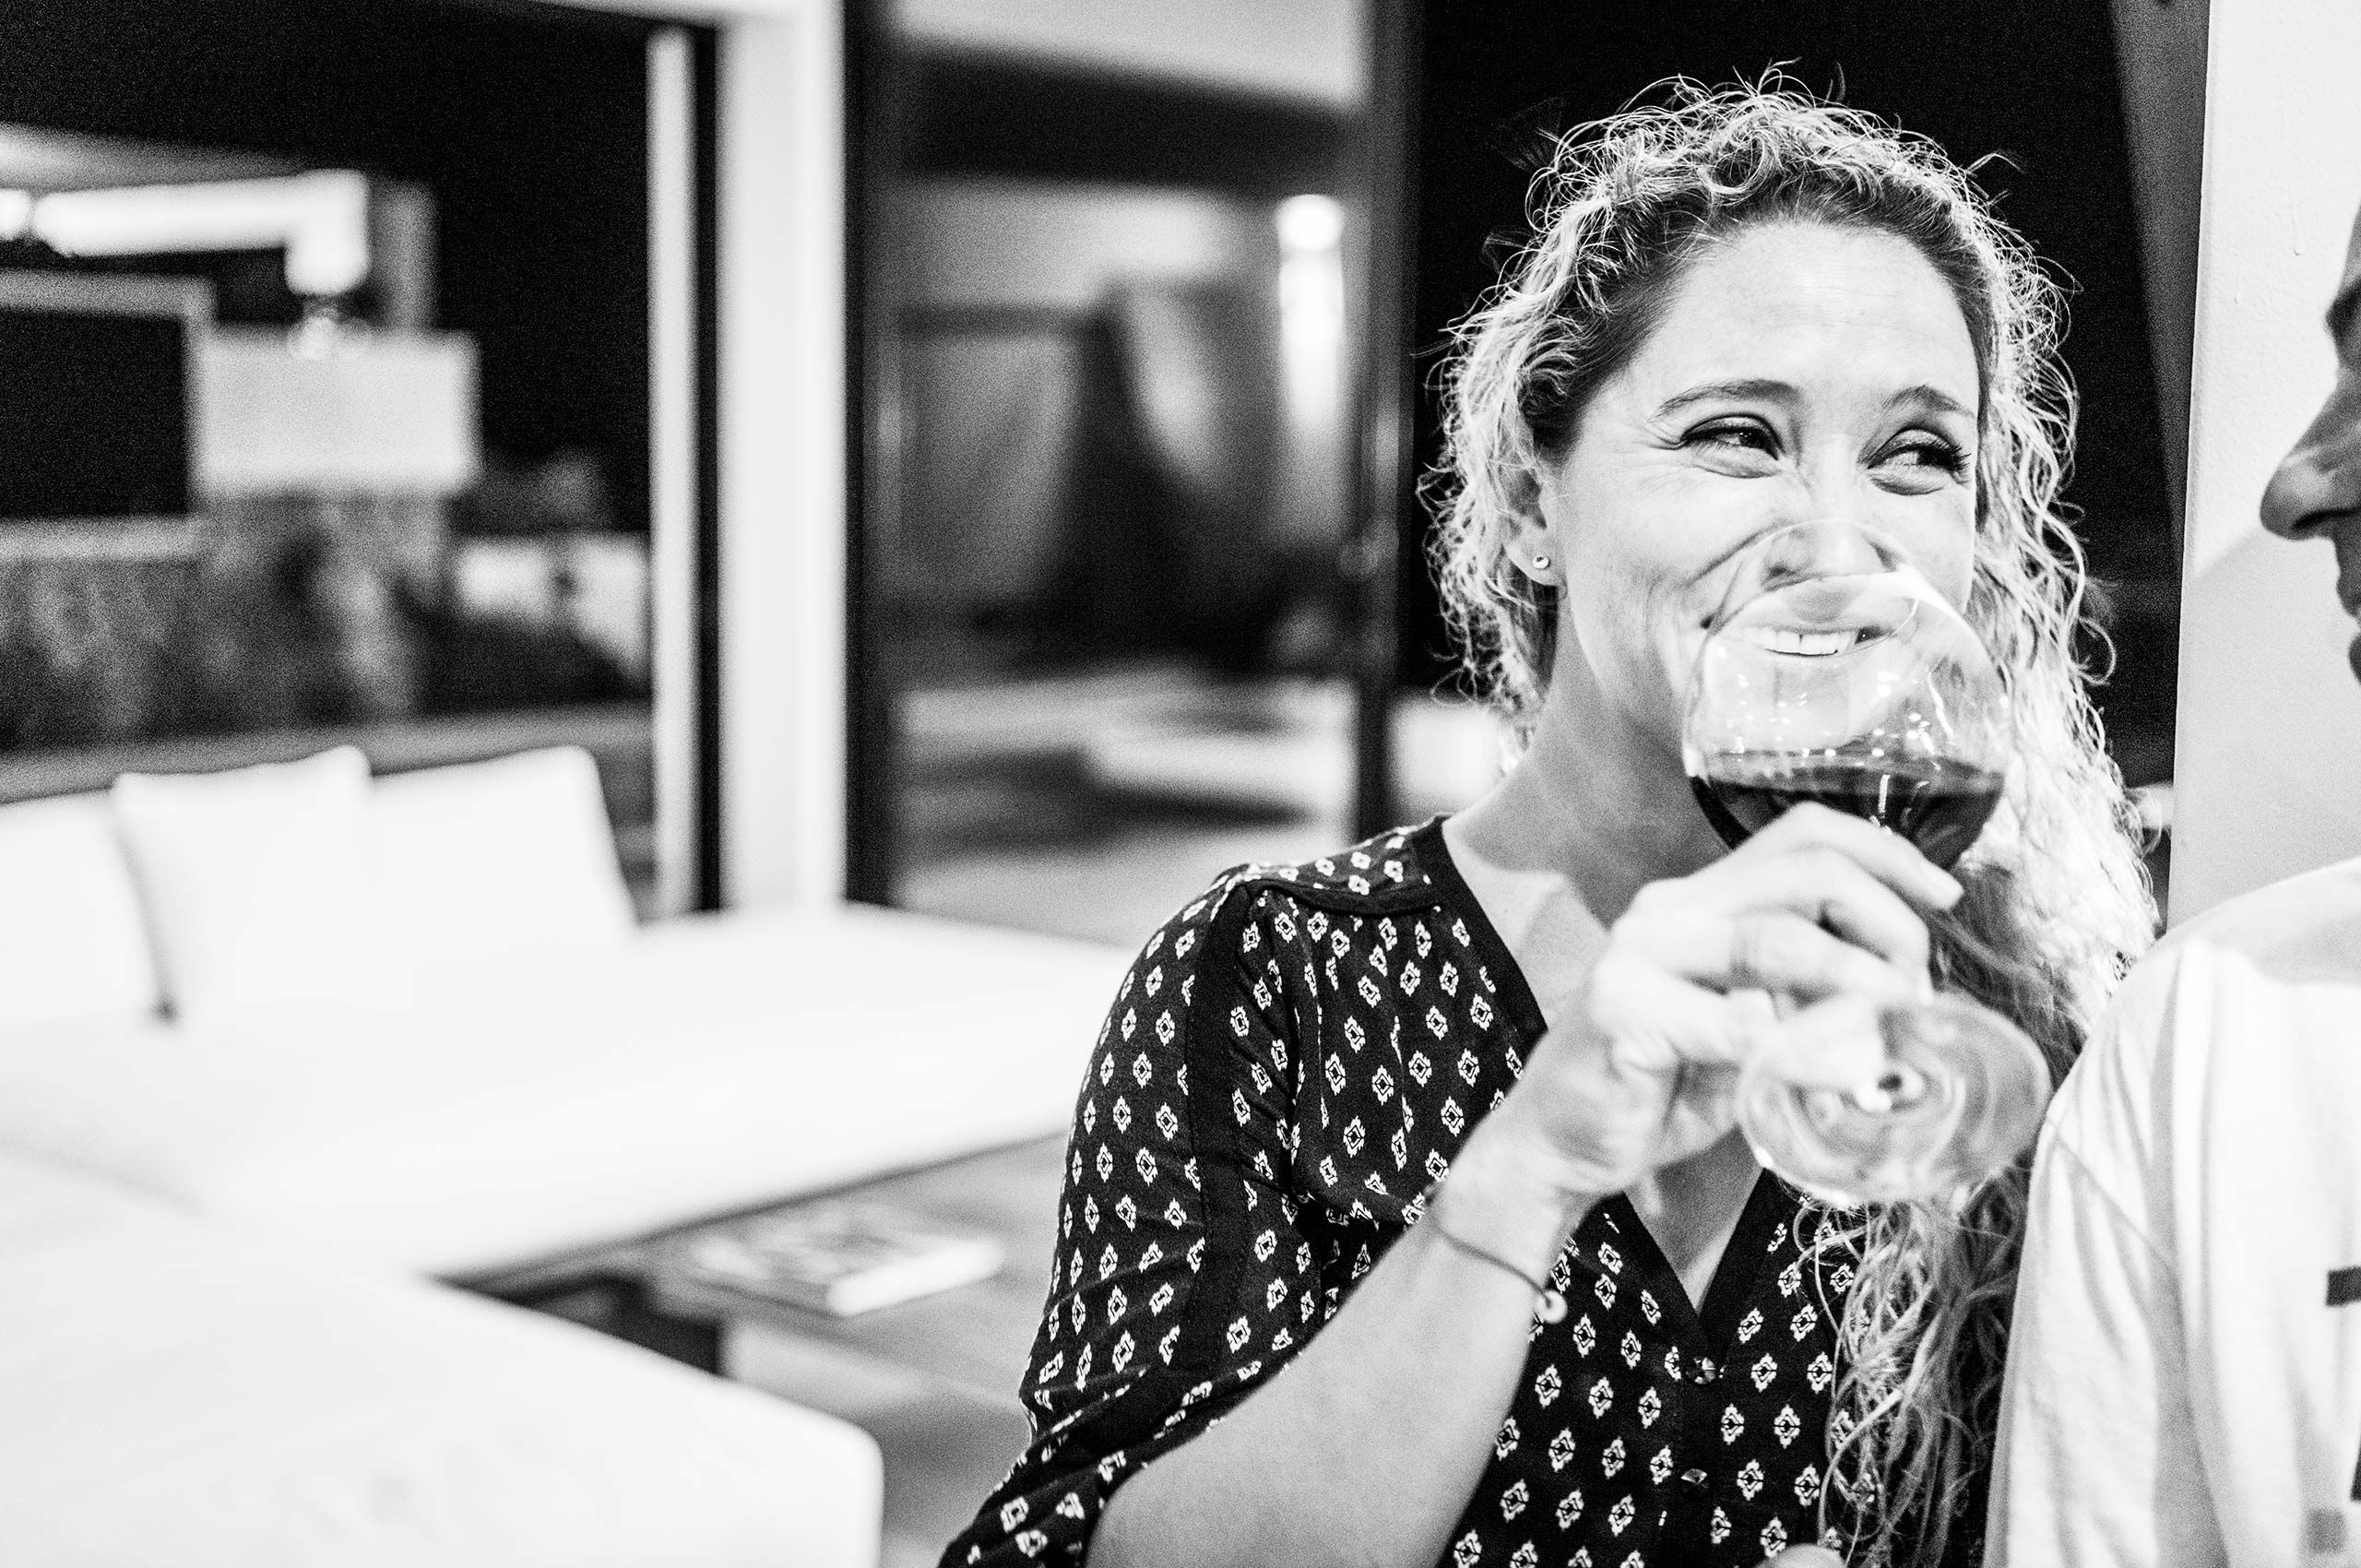 woman-with-wine-HenrikOlundPhotography.jpg